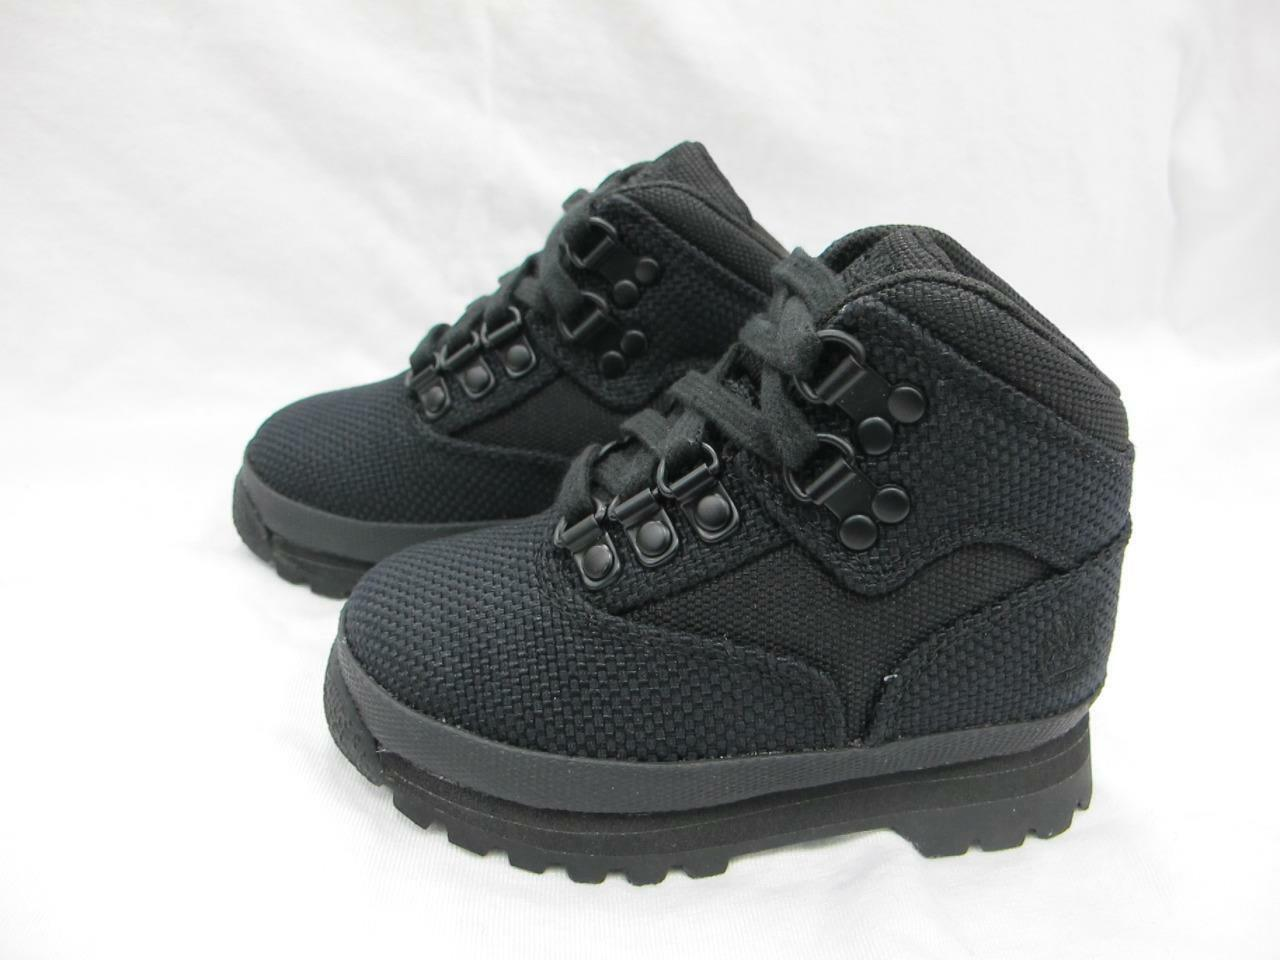 BRAND NEW TODDLERS TIMBERLAND EURO HIKER A17DH